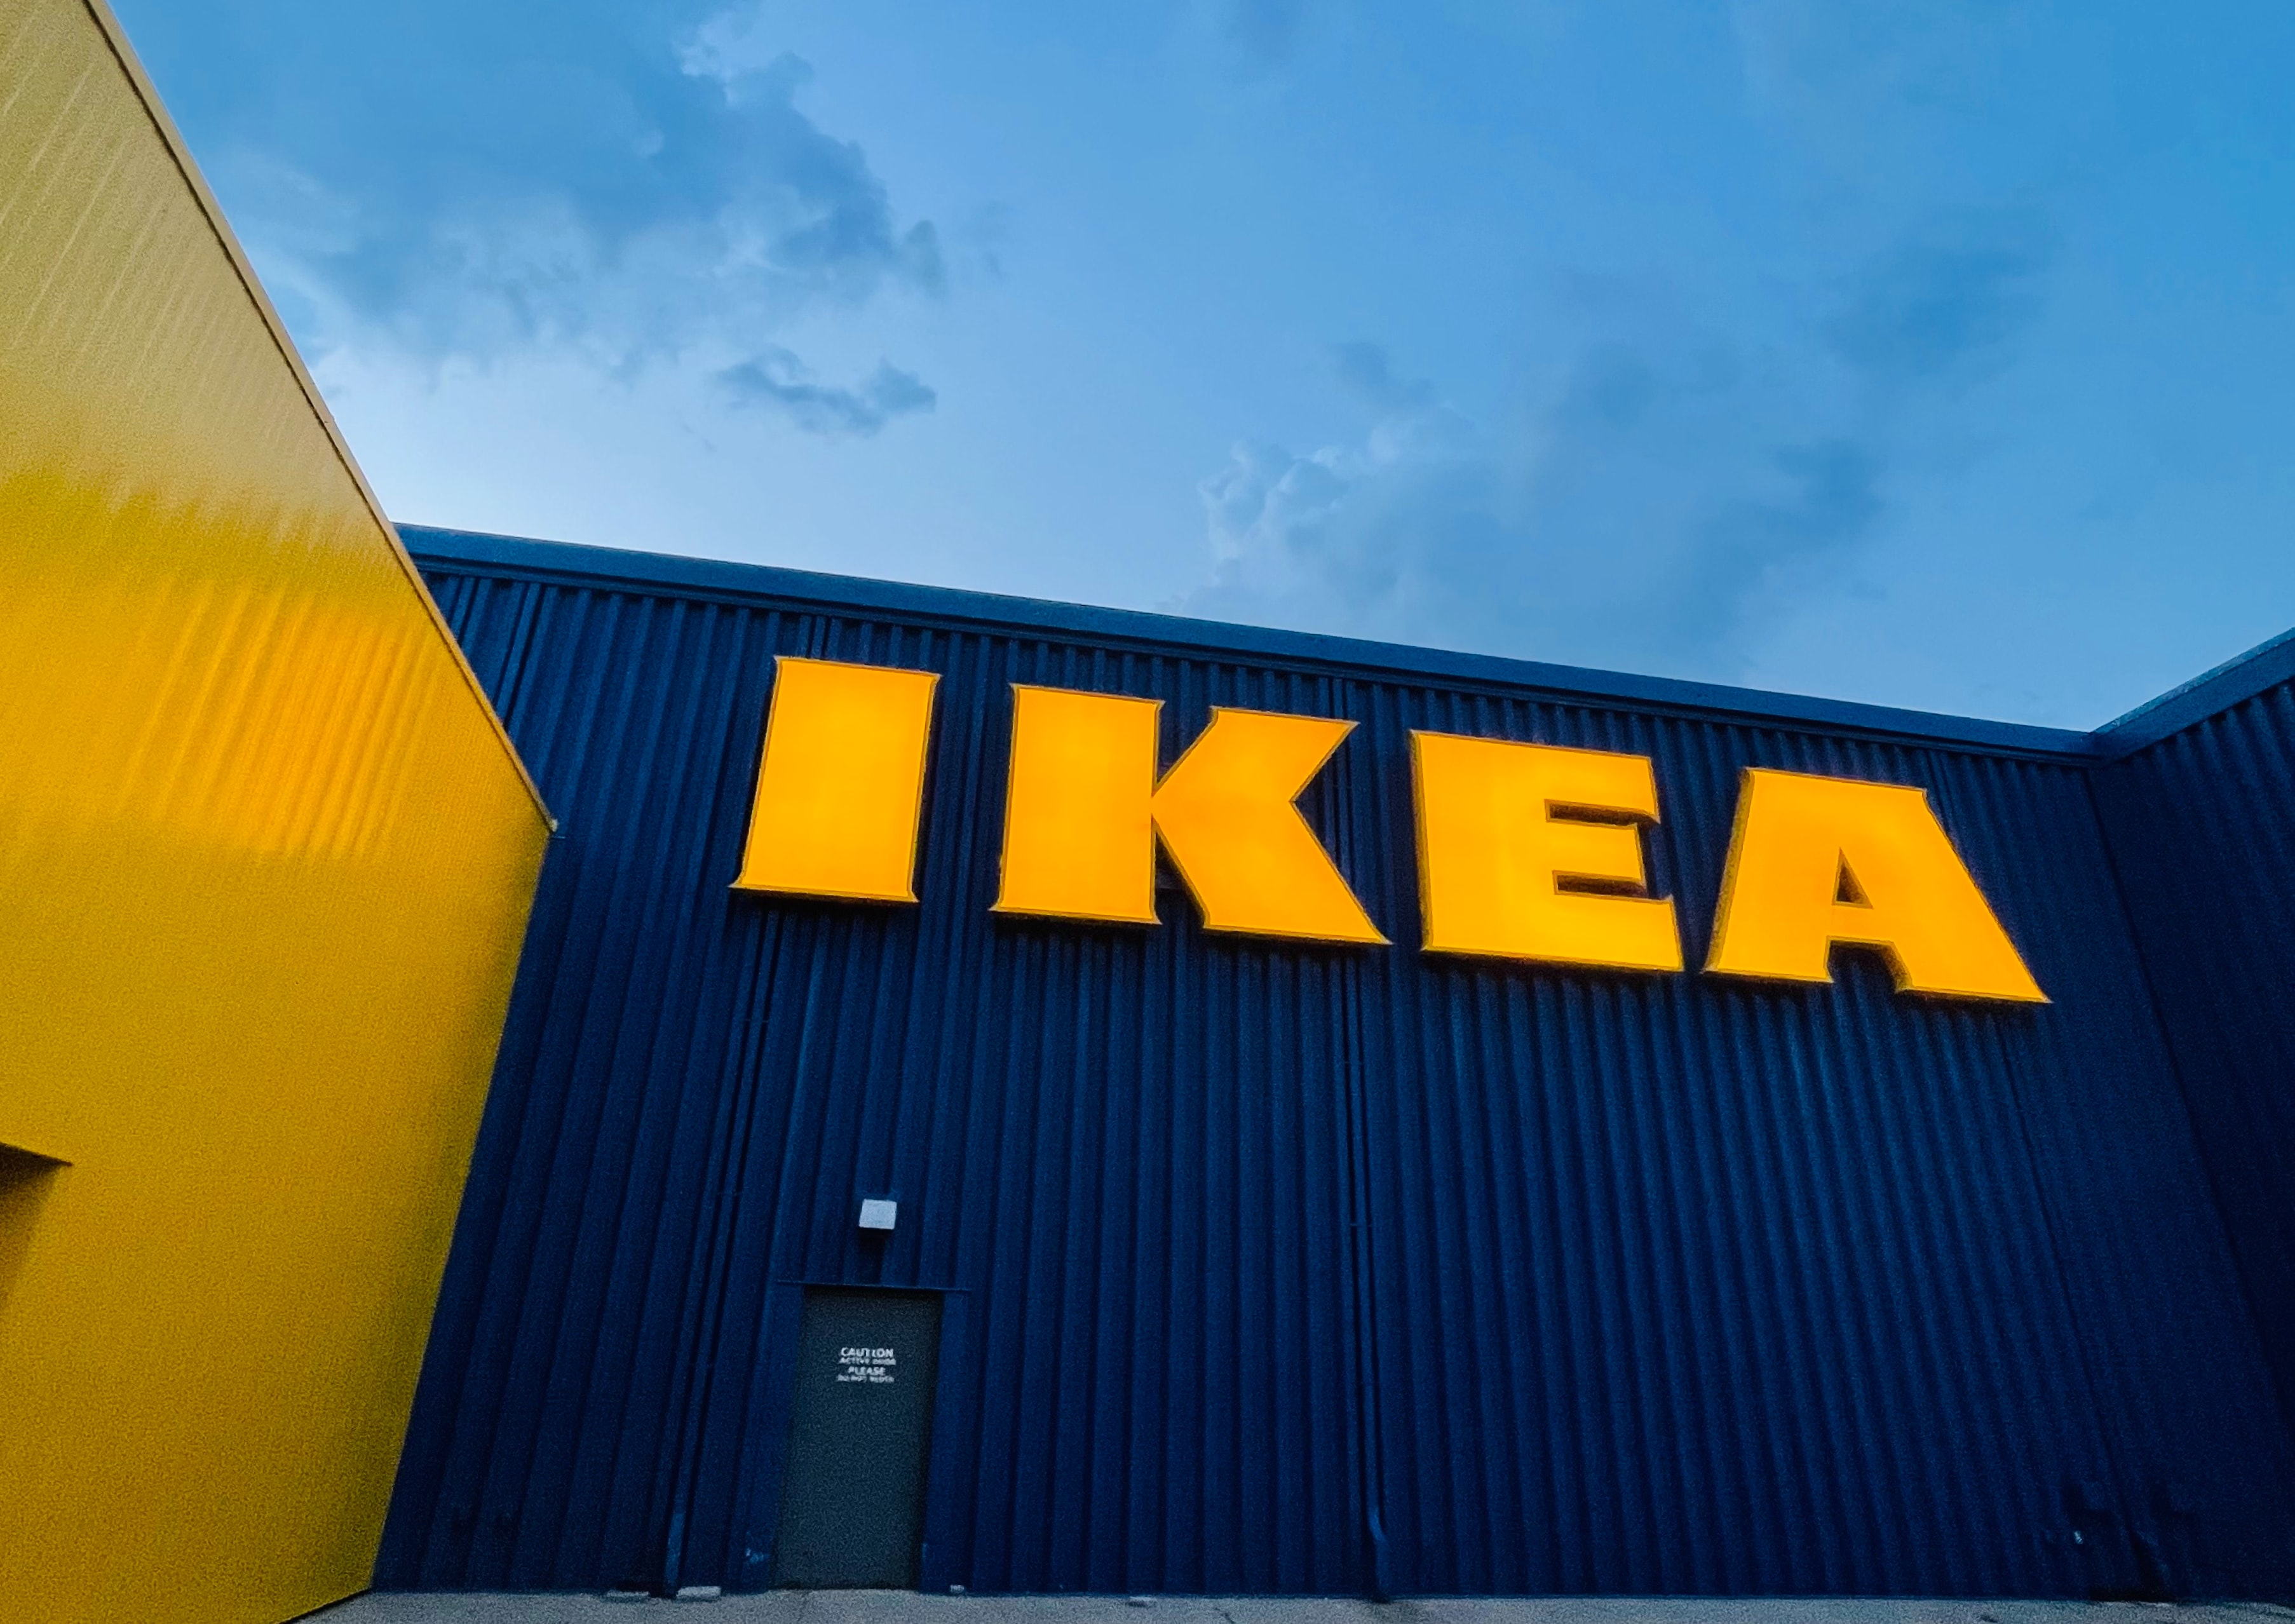 Significant IKEA's online sales growth.